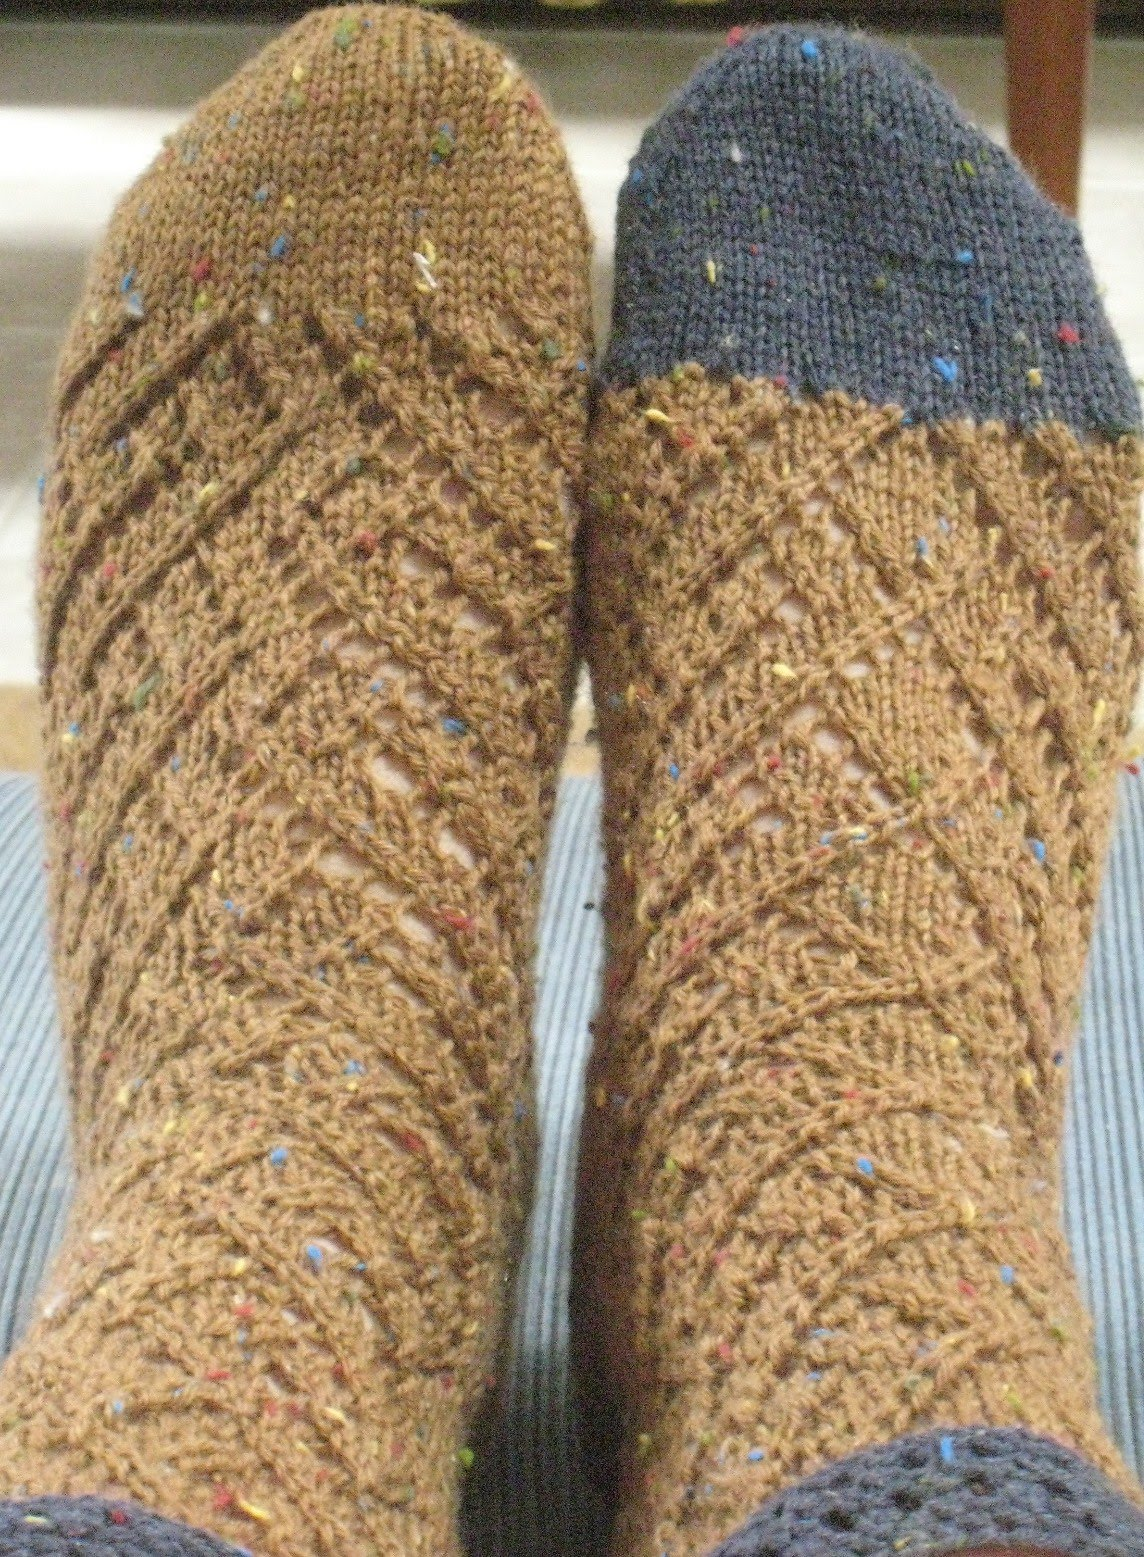 Spiral Socks Knitting Pattern : Carols knitting page: Diamond Spiral Socks